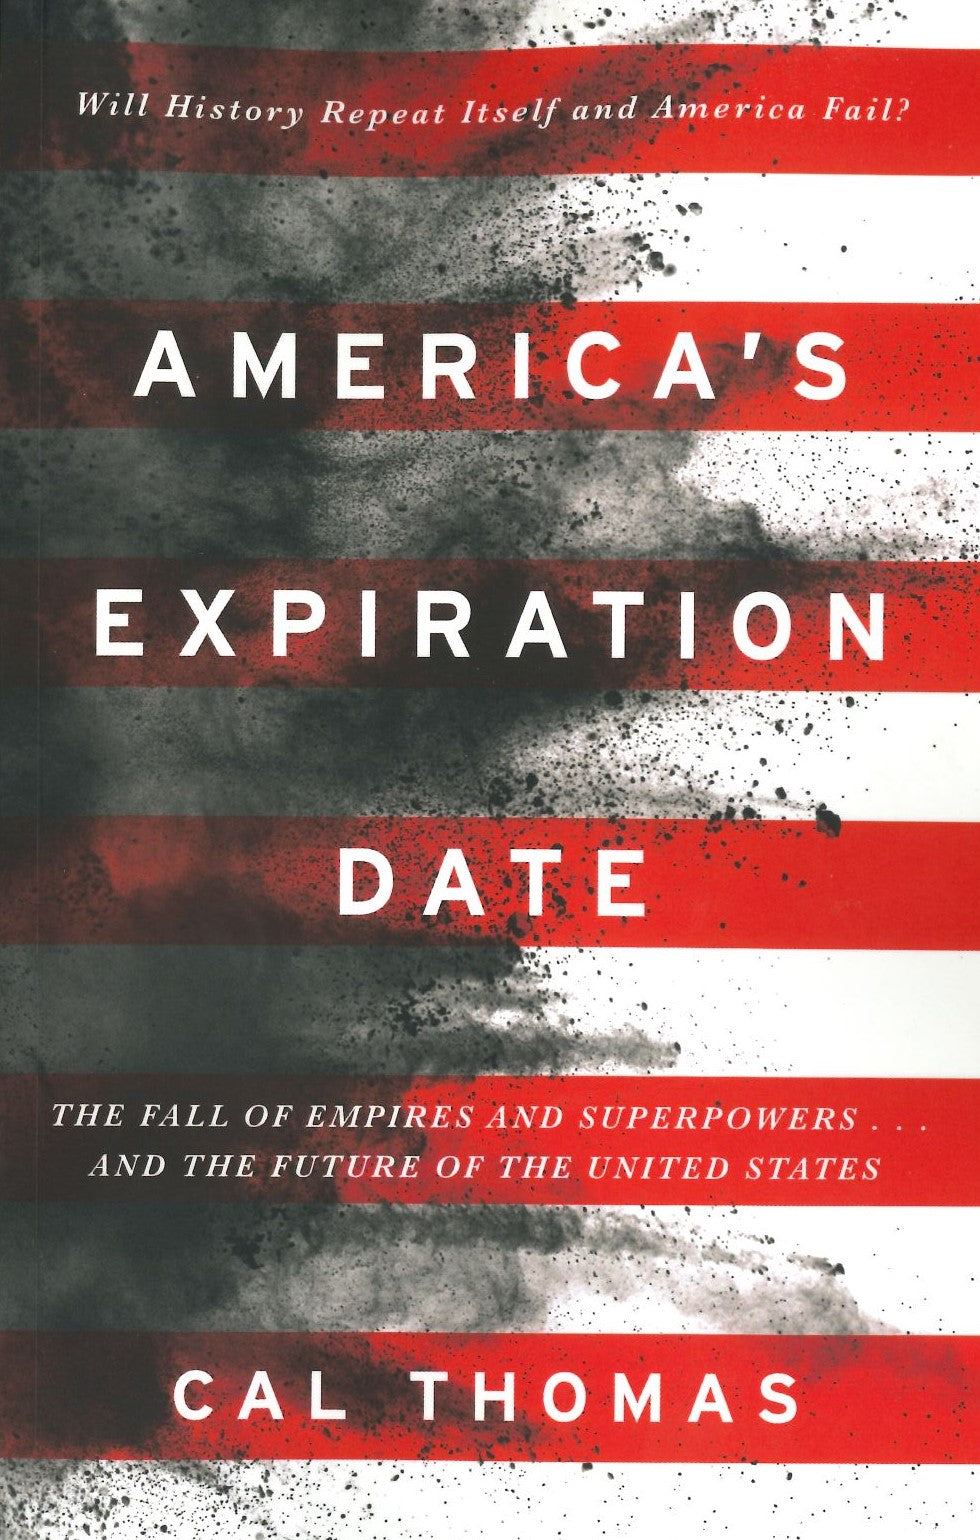 America's Expiration Date: The Fall of Empires and Superpowers... and the Future of the United States by Cal Thomas